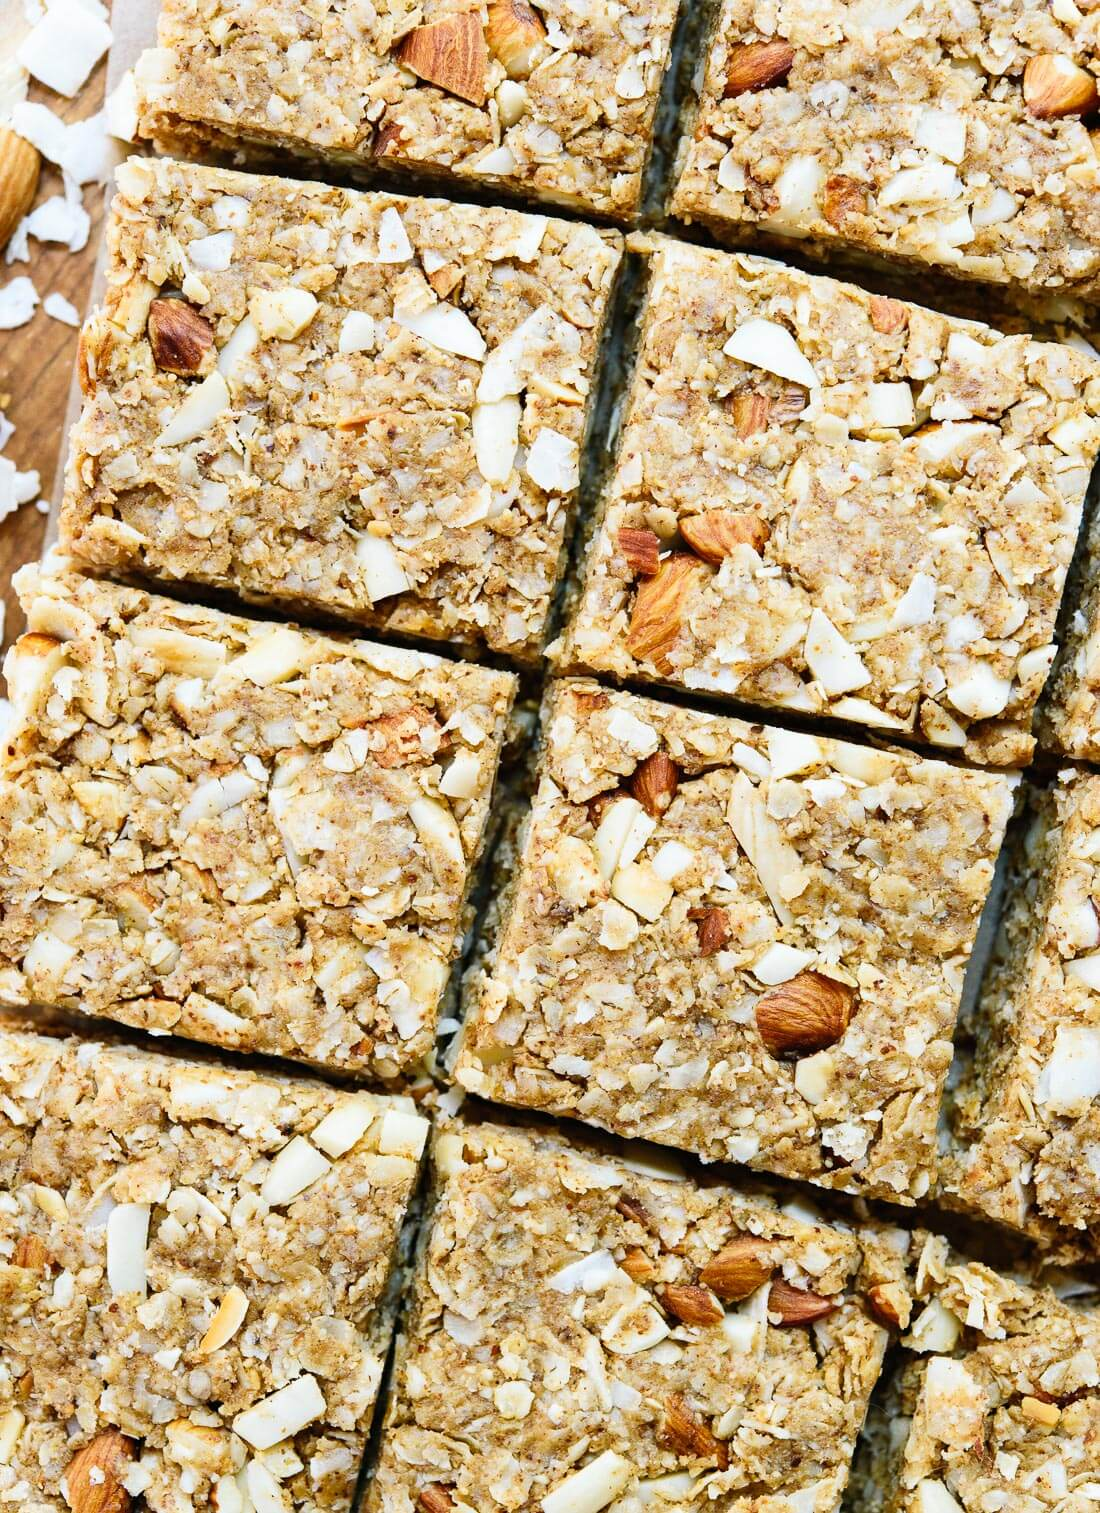 These healthy homemade granola bars are delicious and easy to make! Keep some handy for when hunger strikes. cookieandkate.com